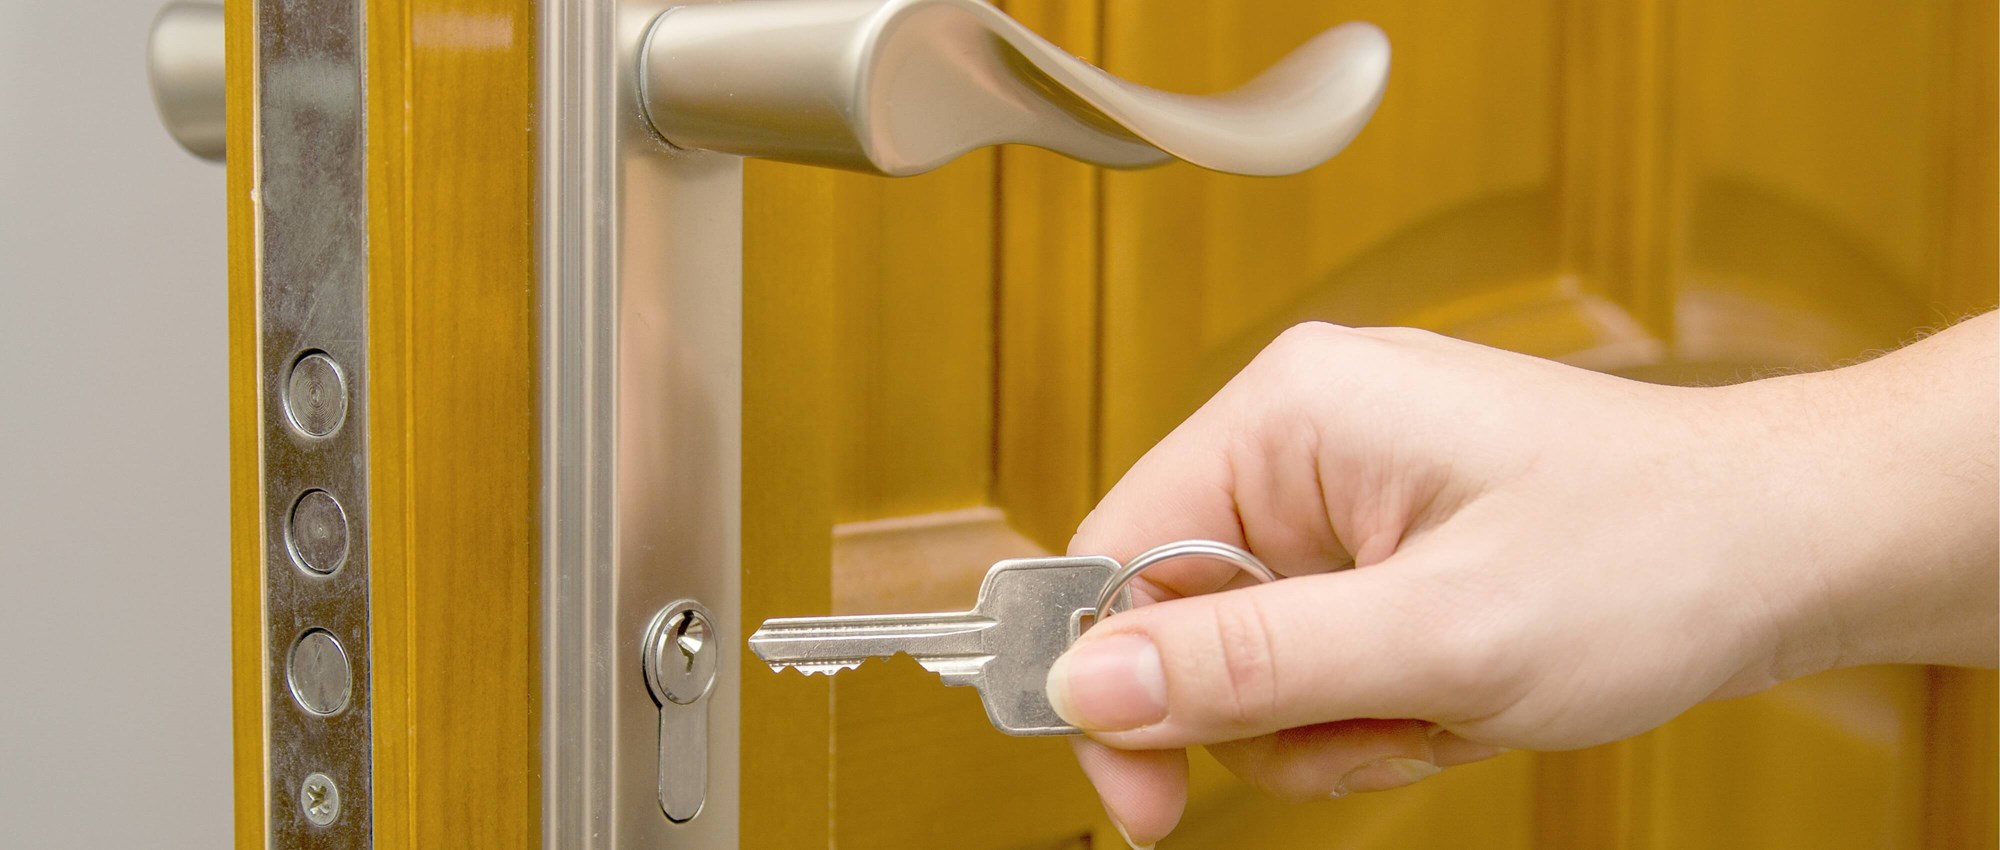 Someone unlocking a door with a key